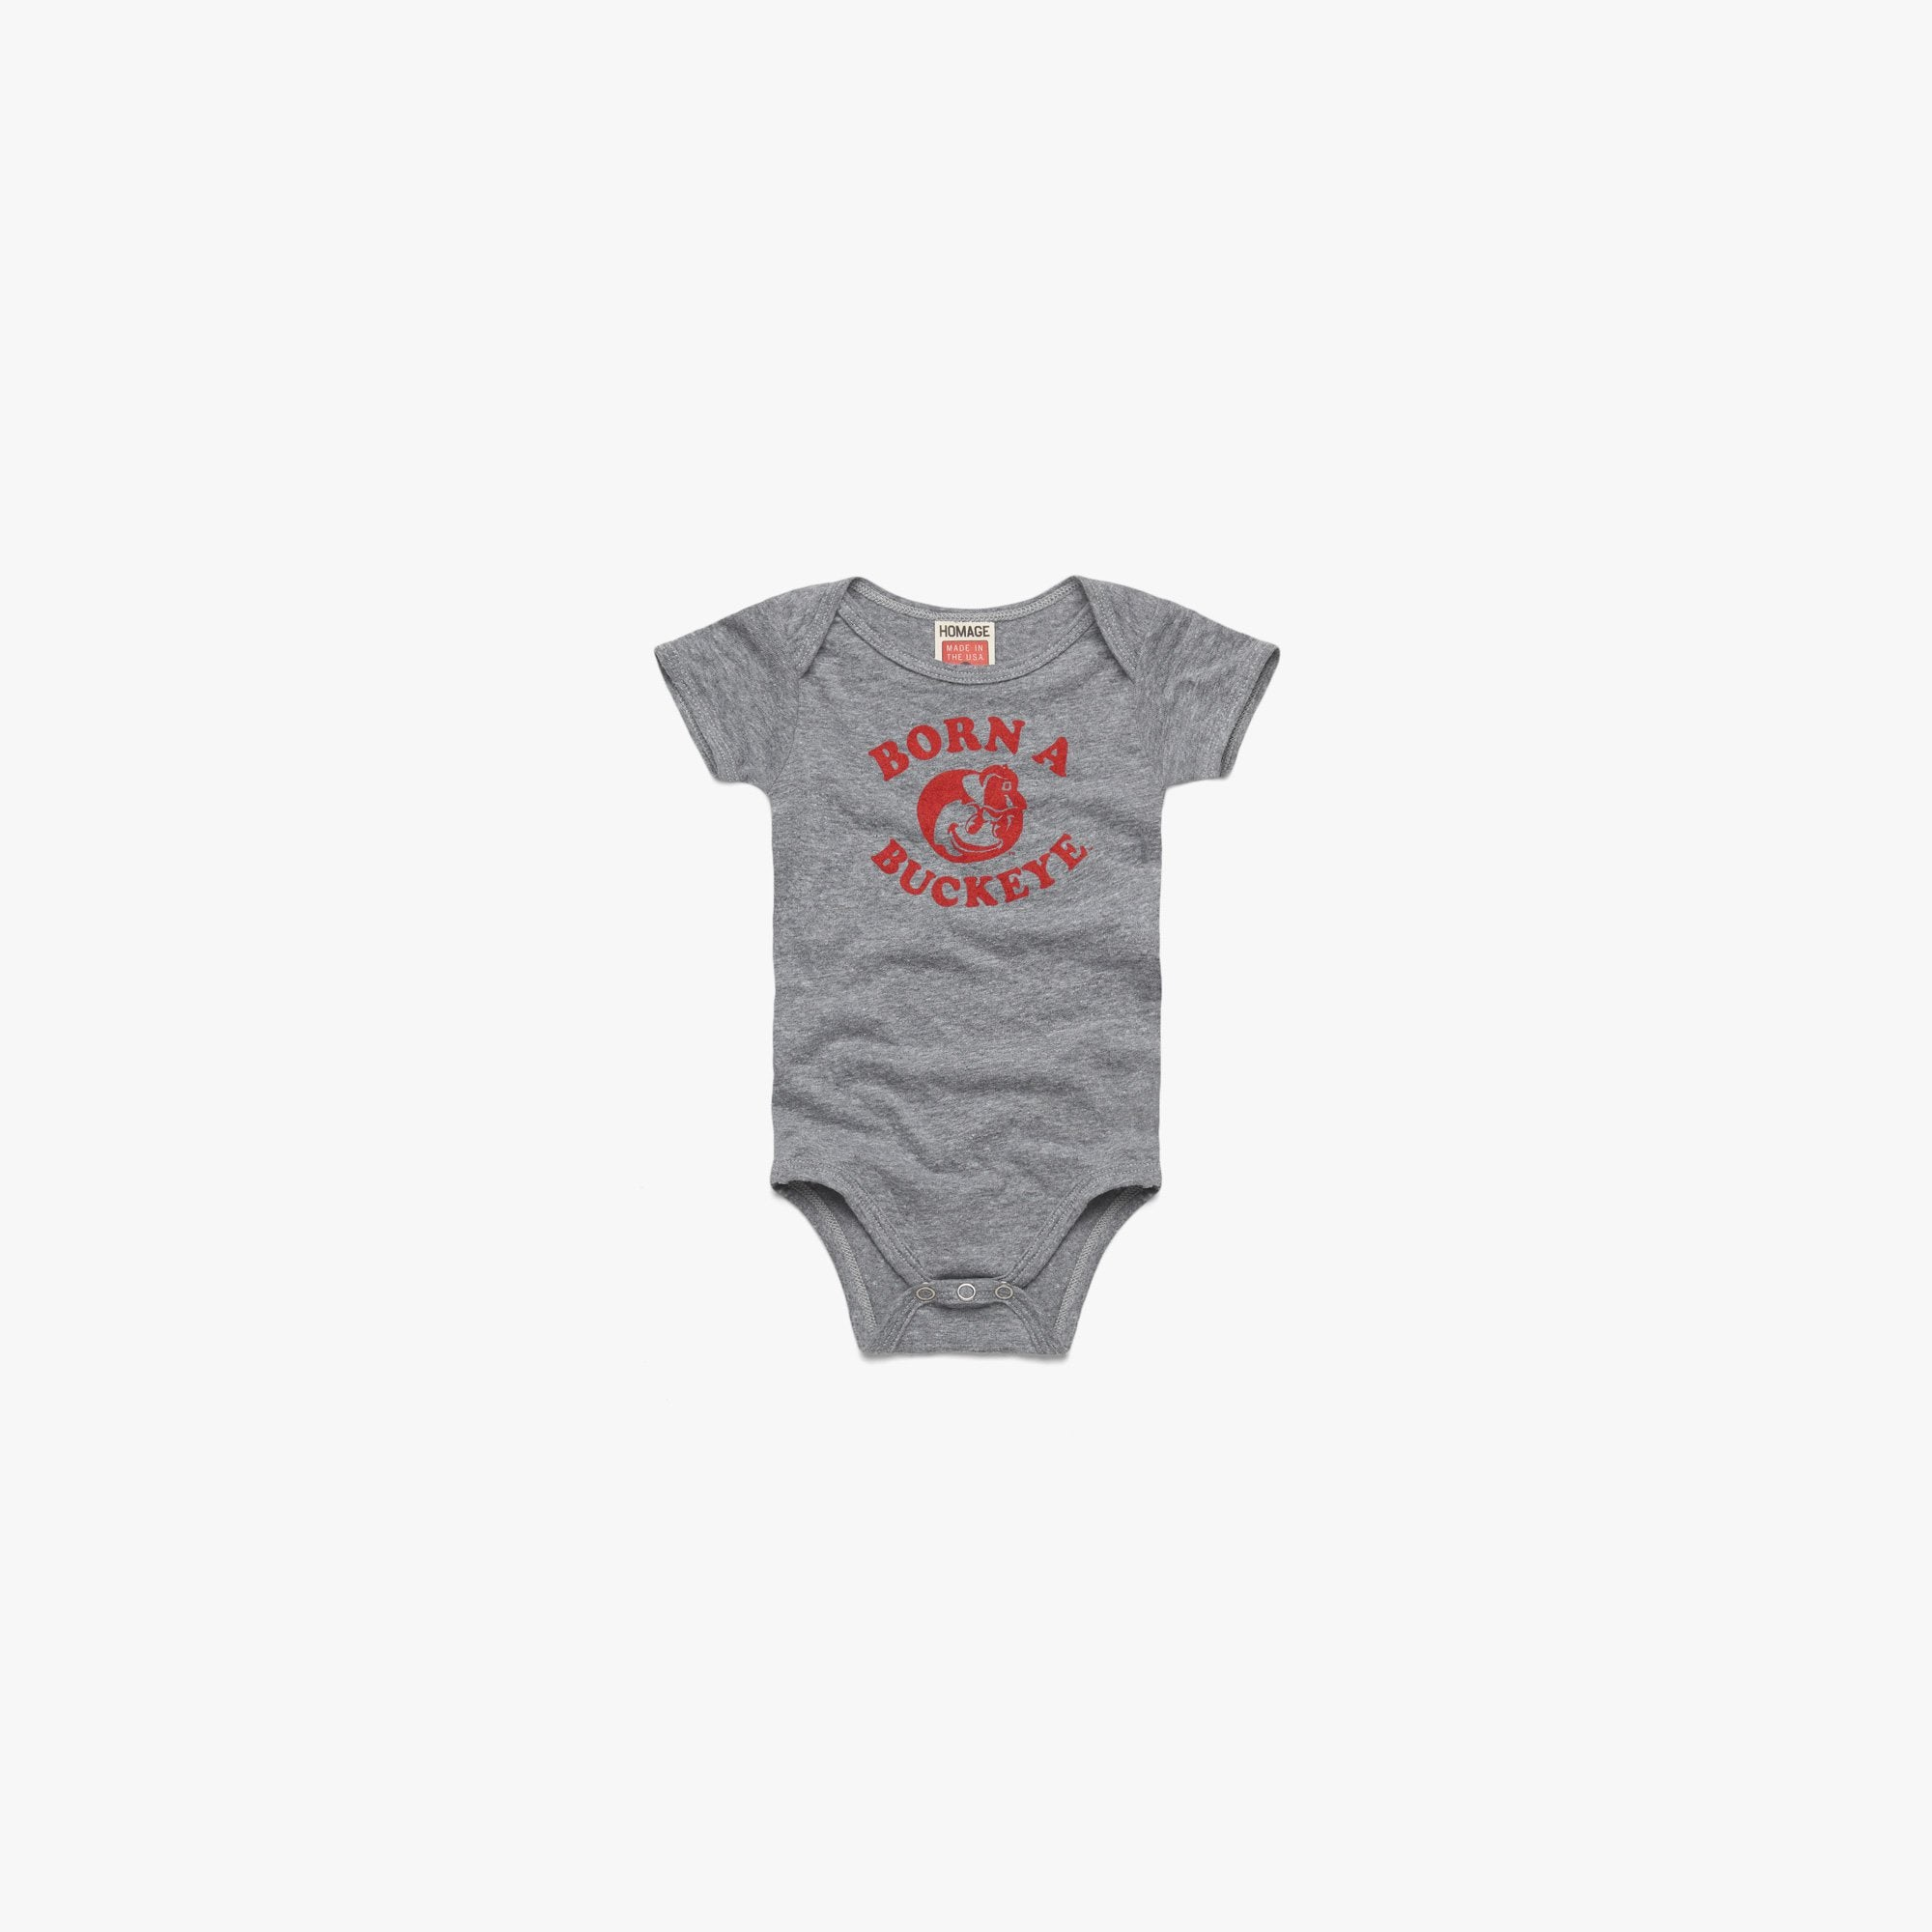 Born a Buckeye Baby One Piece